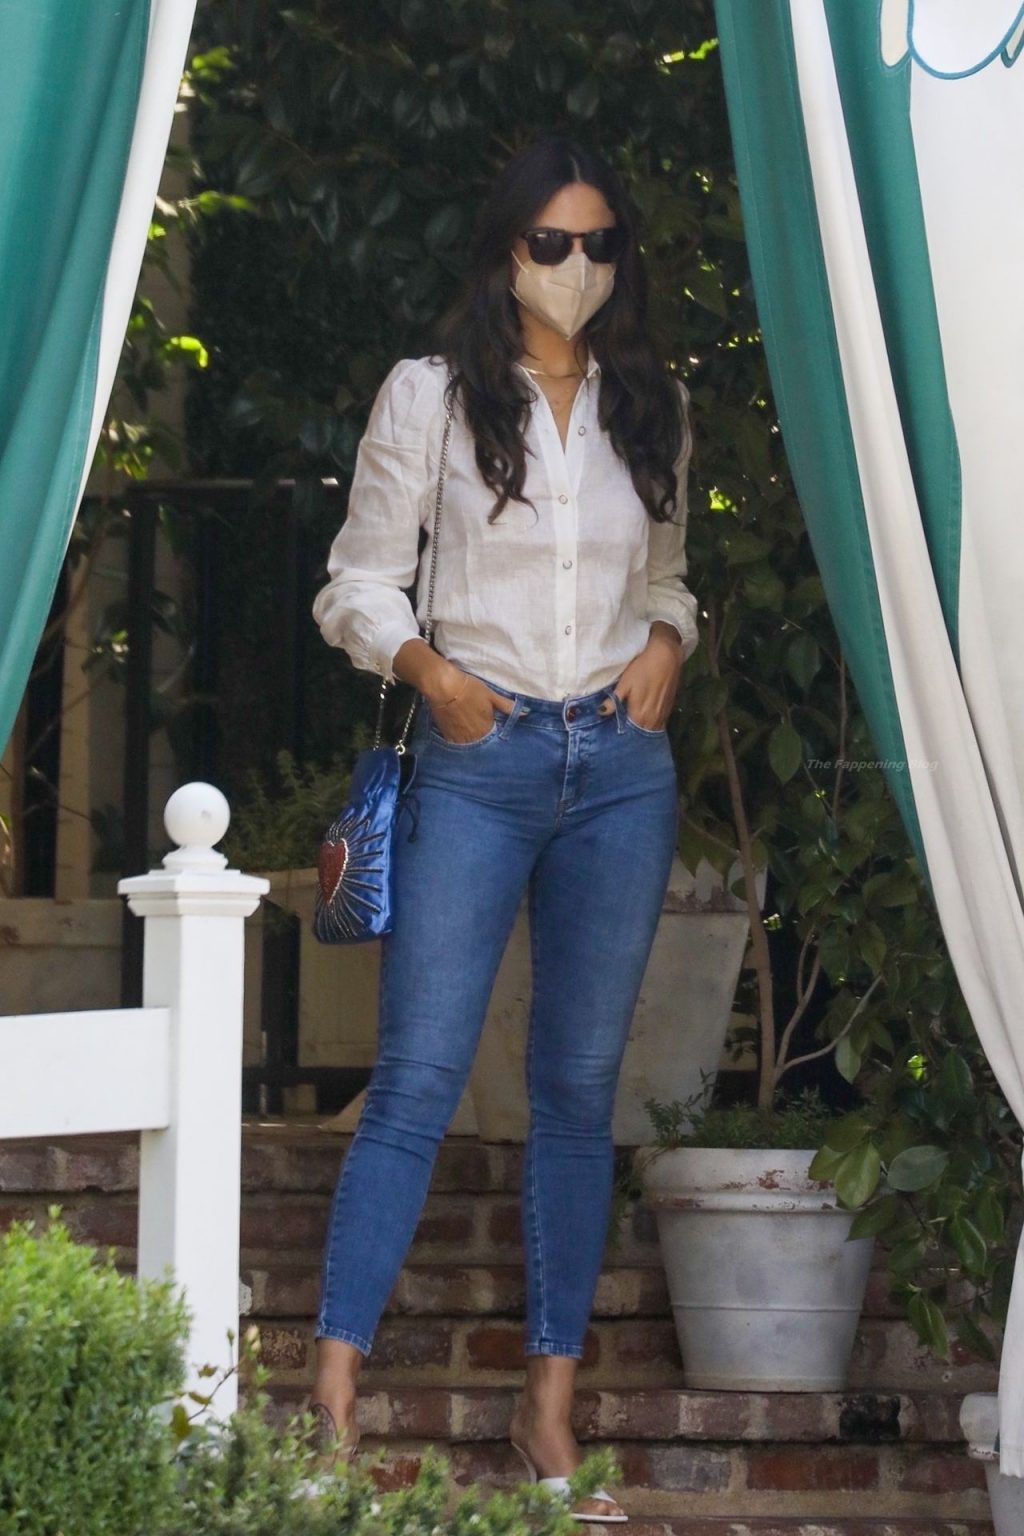 Eiza Gonzalez Leaves After Lunch at San Vicente Bungalows (70 Photos)